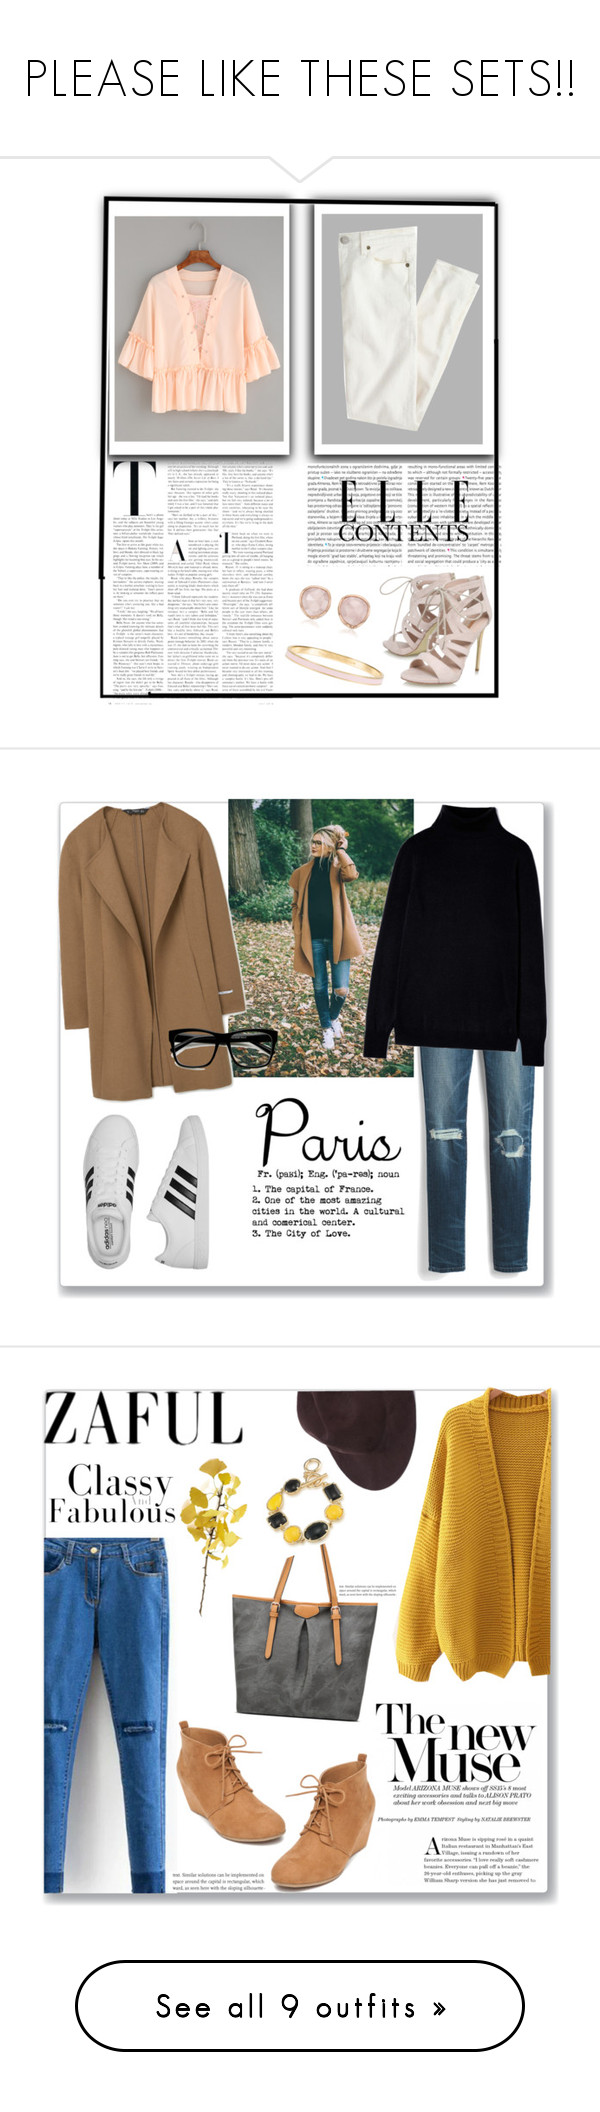 """""""PLEASE LIKE THESE SETS!!"""" by enjolras1832 ❤ liked on Polyvore featuring Monica Vinader, J.Crew, Carvela, Oris, Kate Spade, White House Black Market, MANGO, adidas, ZeroUV and New Directions"""